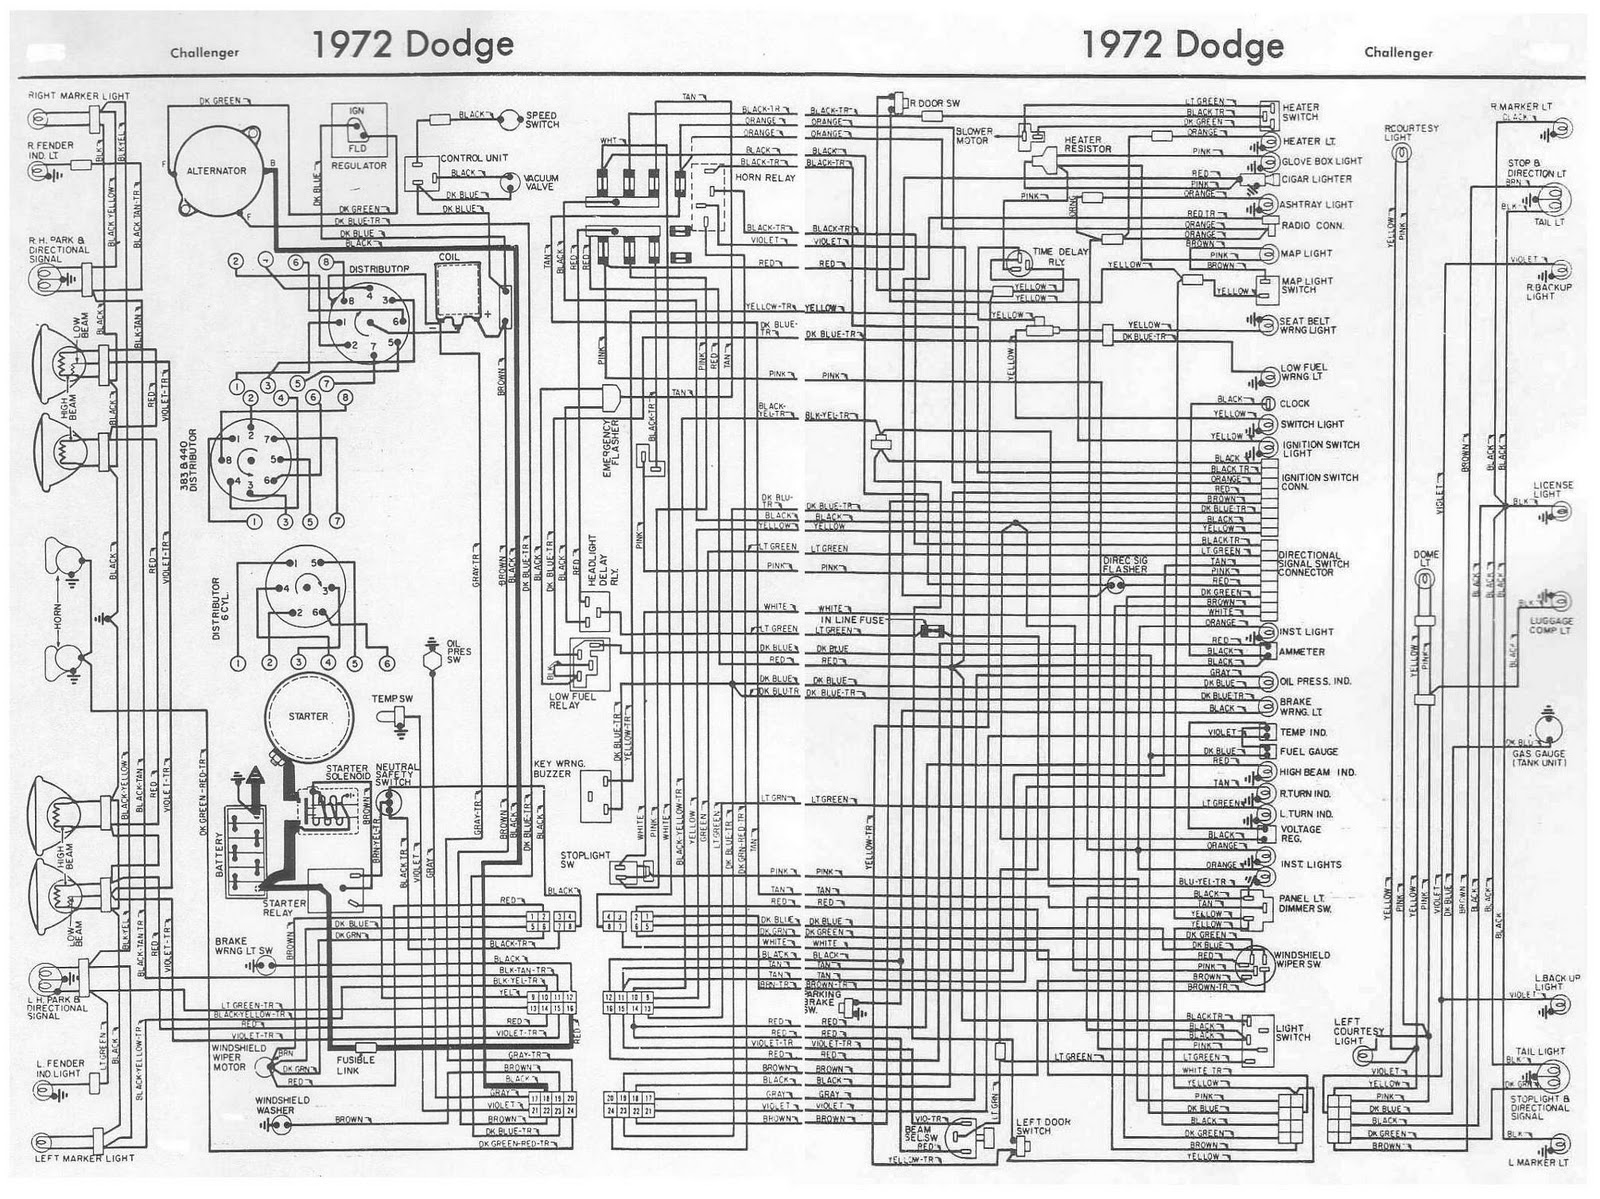 Dodge+Challenger+1972+Complete+Wiring+Diagram dodge challenger 1972 complete wiring diagram all about wiring 1970 dodge challenger wiring diagram at bayanpartner.co